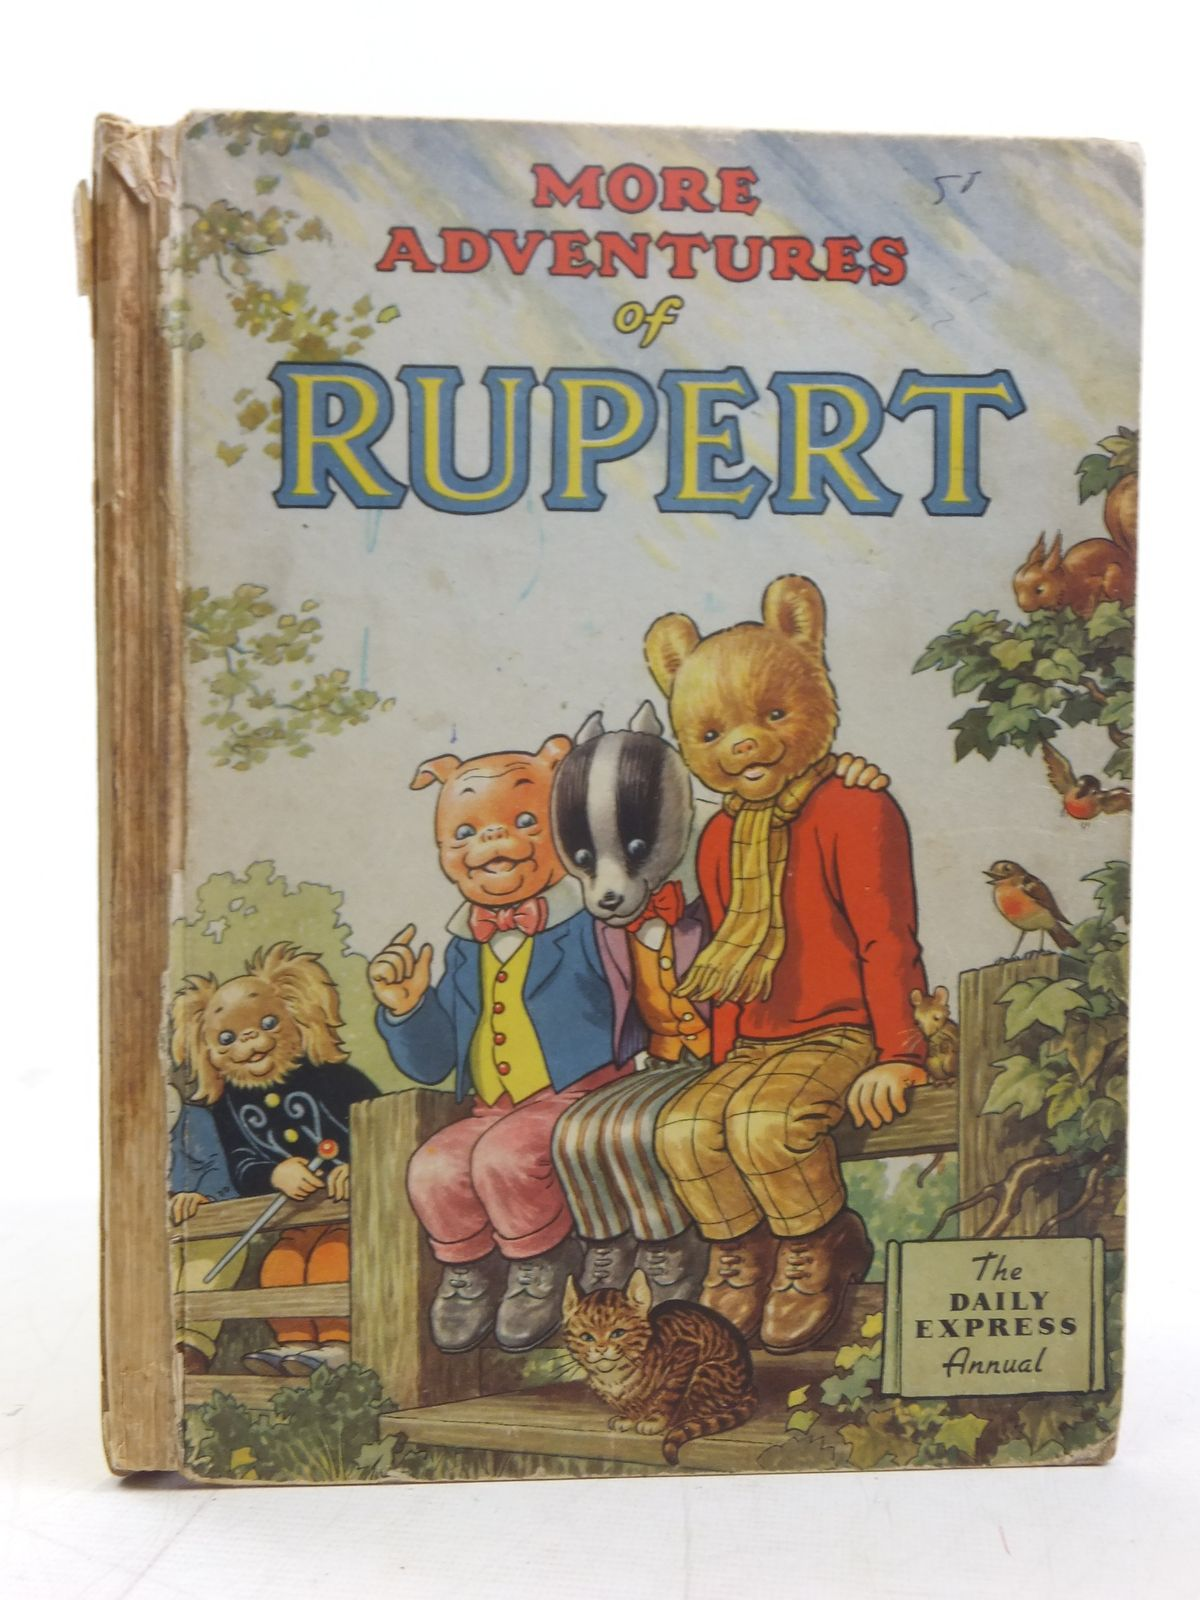 Photo of RUPERT ANNUAL 1953 - MORE ADVENTURES OF RUPERT written by Bestall, Alfred illustrated by Bestall, Alfred published by Daily Express (STOCK CODE: 2116830)  for sale by Stella & Rose's Books